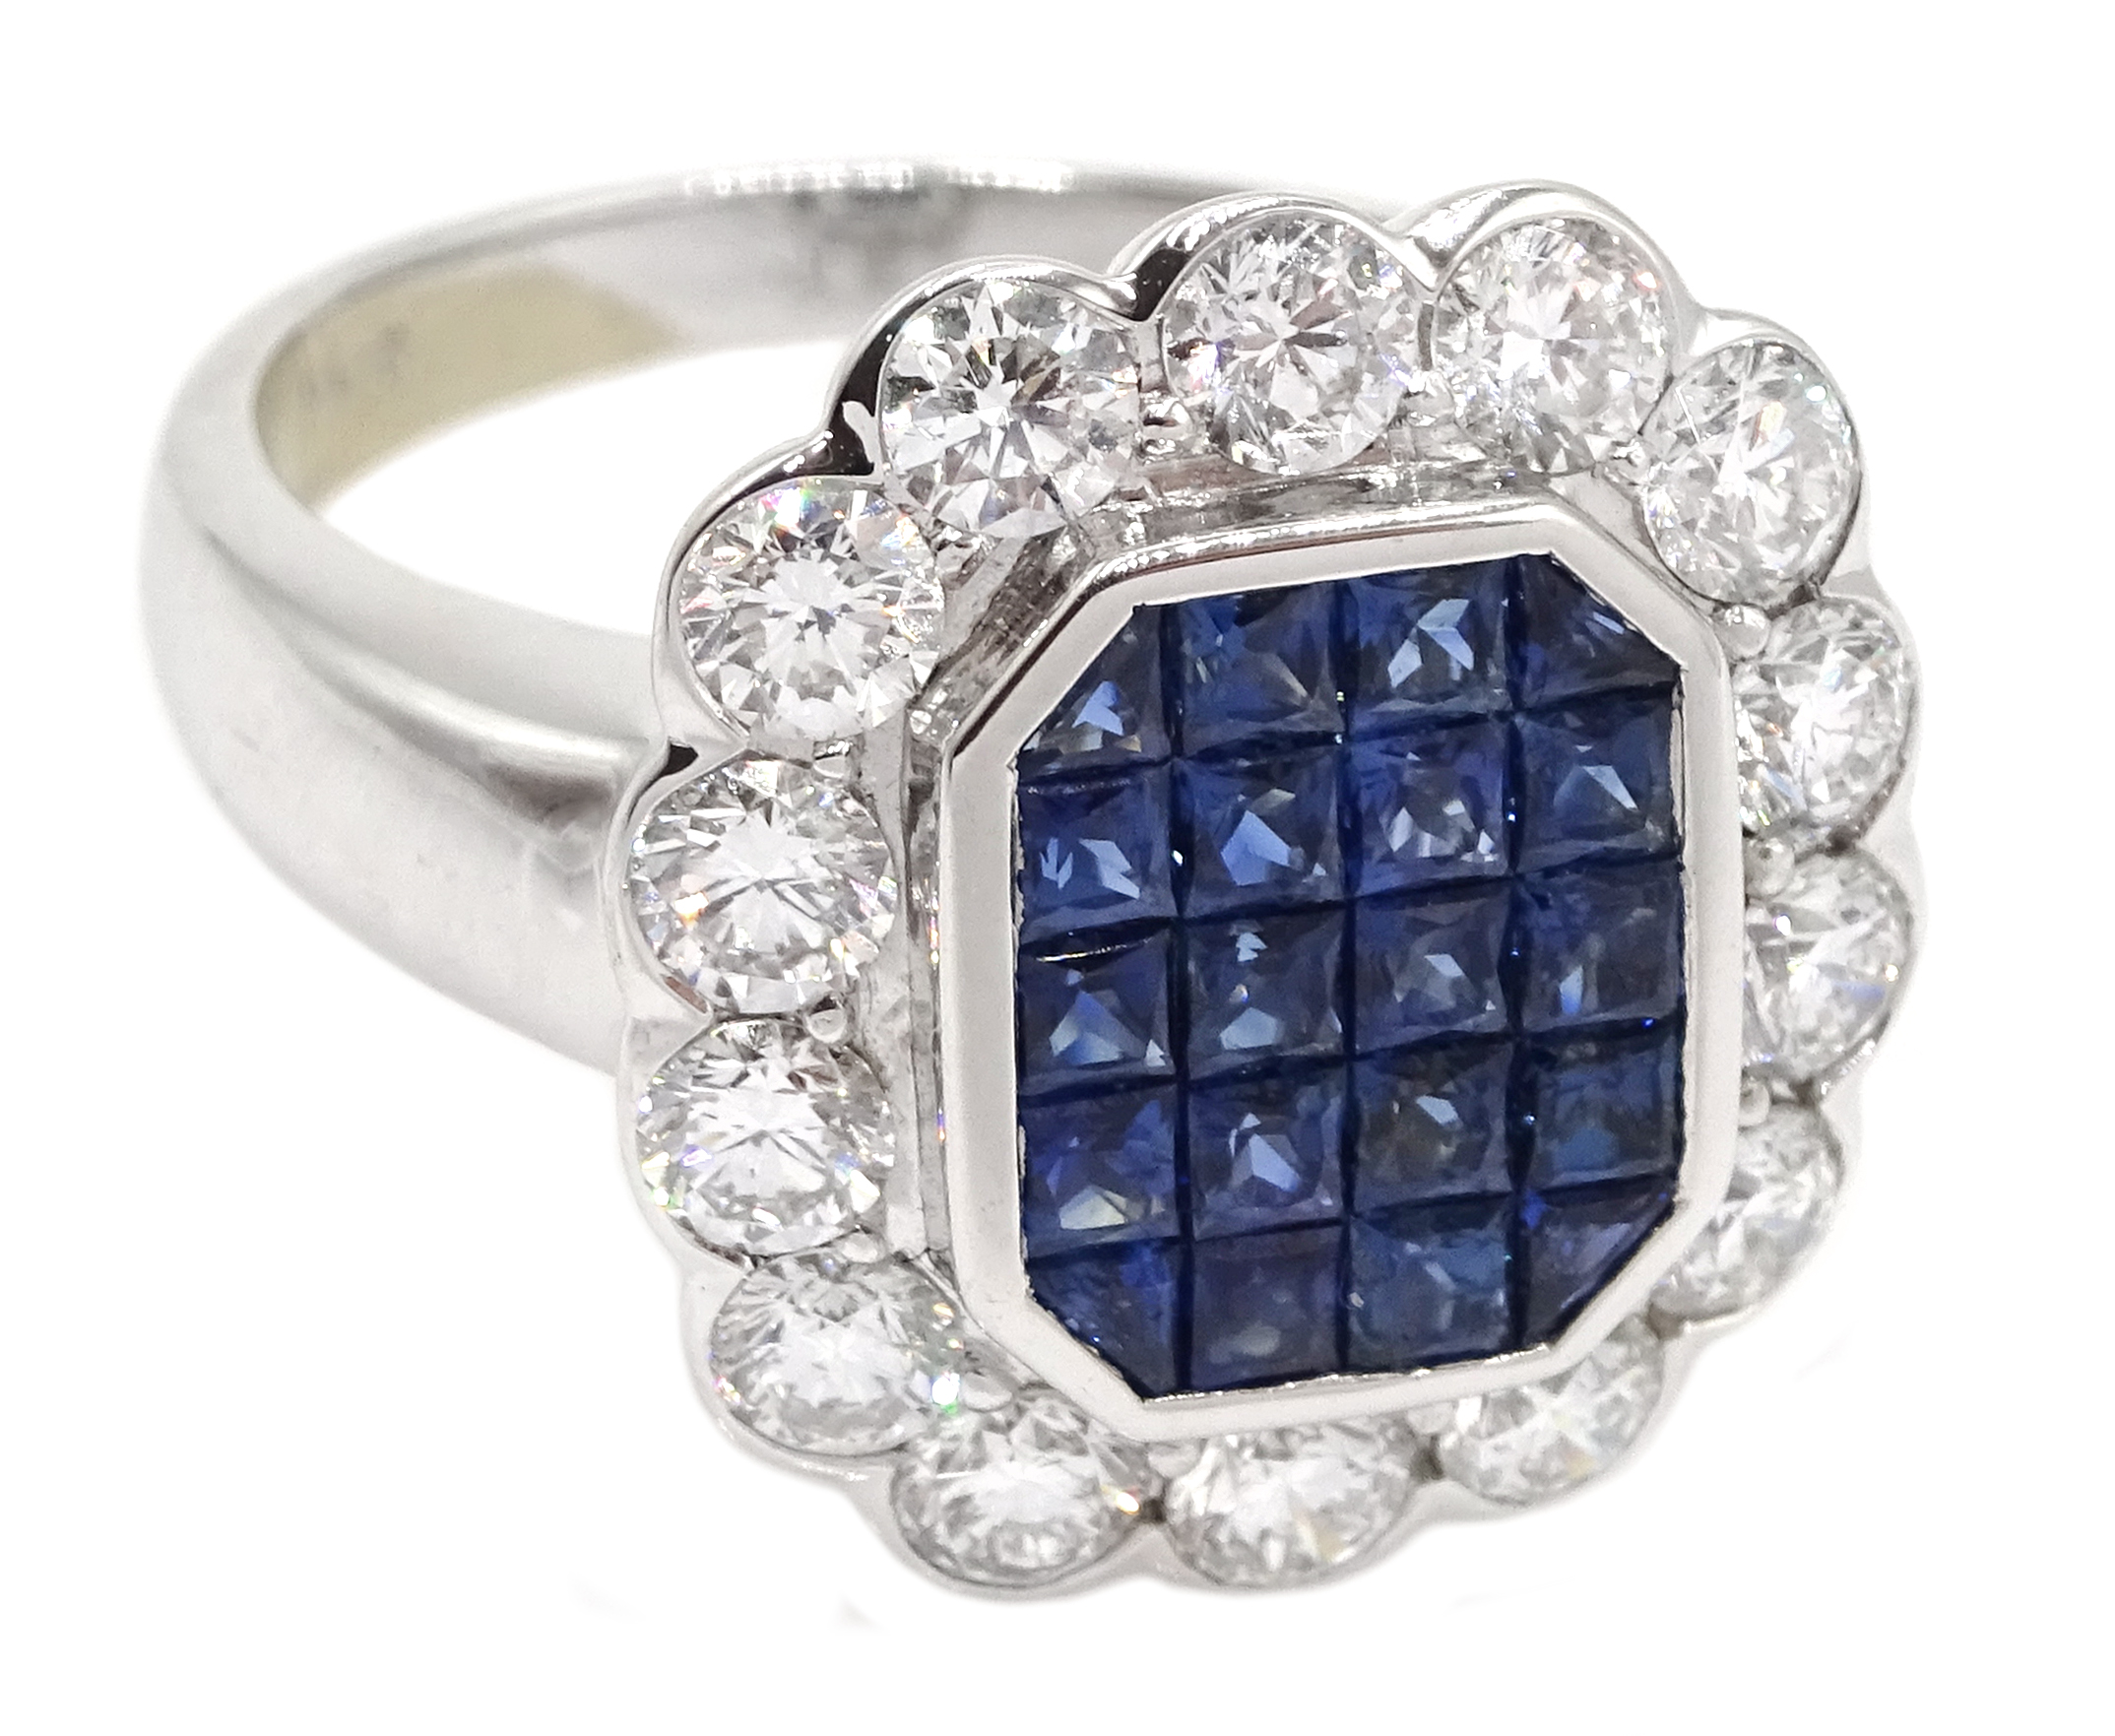 18ct white gold, sapphire and diamond cluster ring, sapphire total weight 2.10 carat, diamond - Image 3 of 5